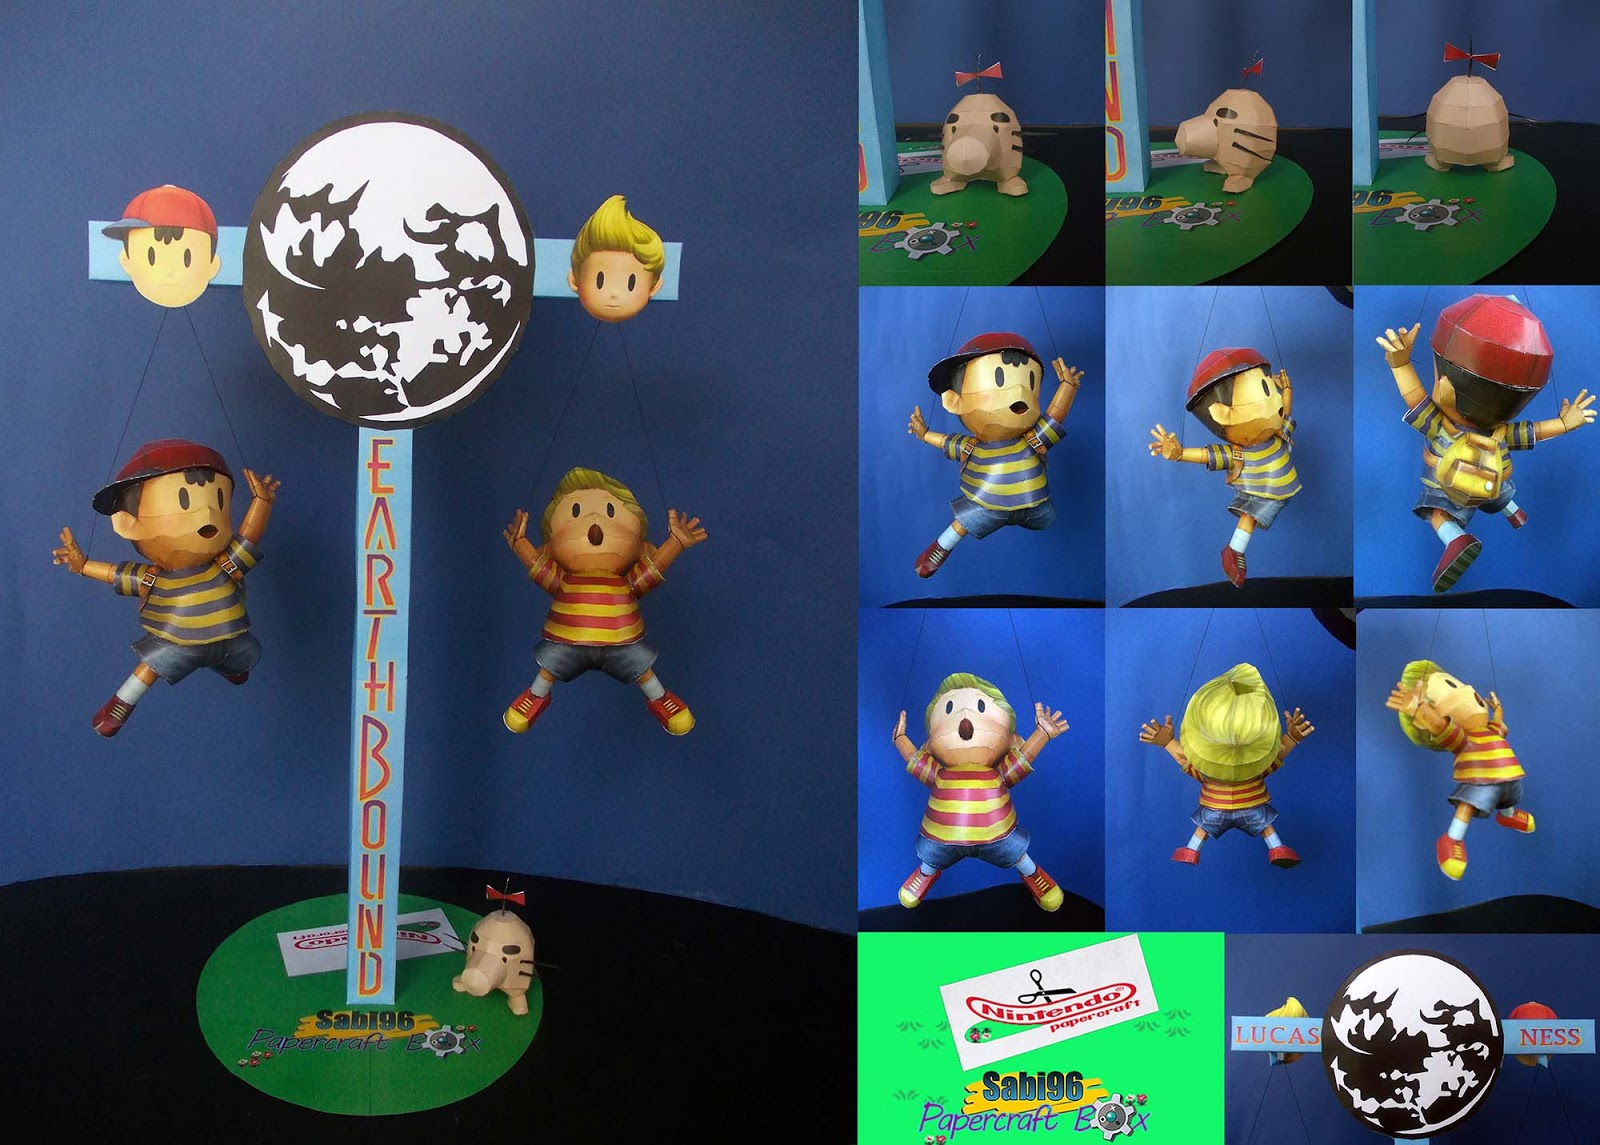 Earthbound Papercraft Set